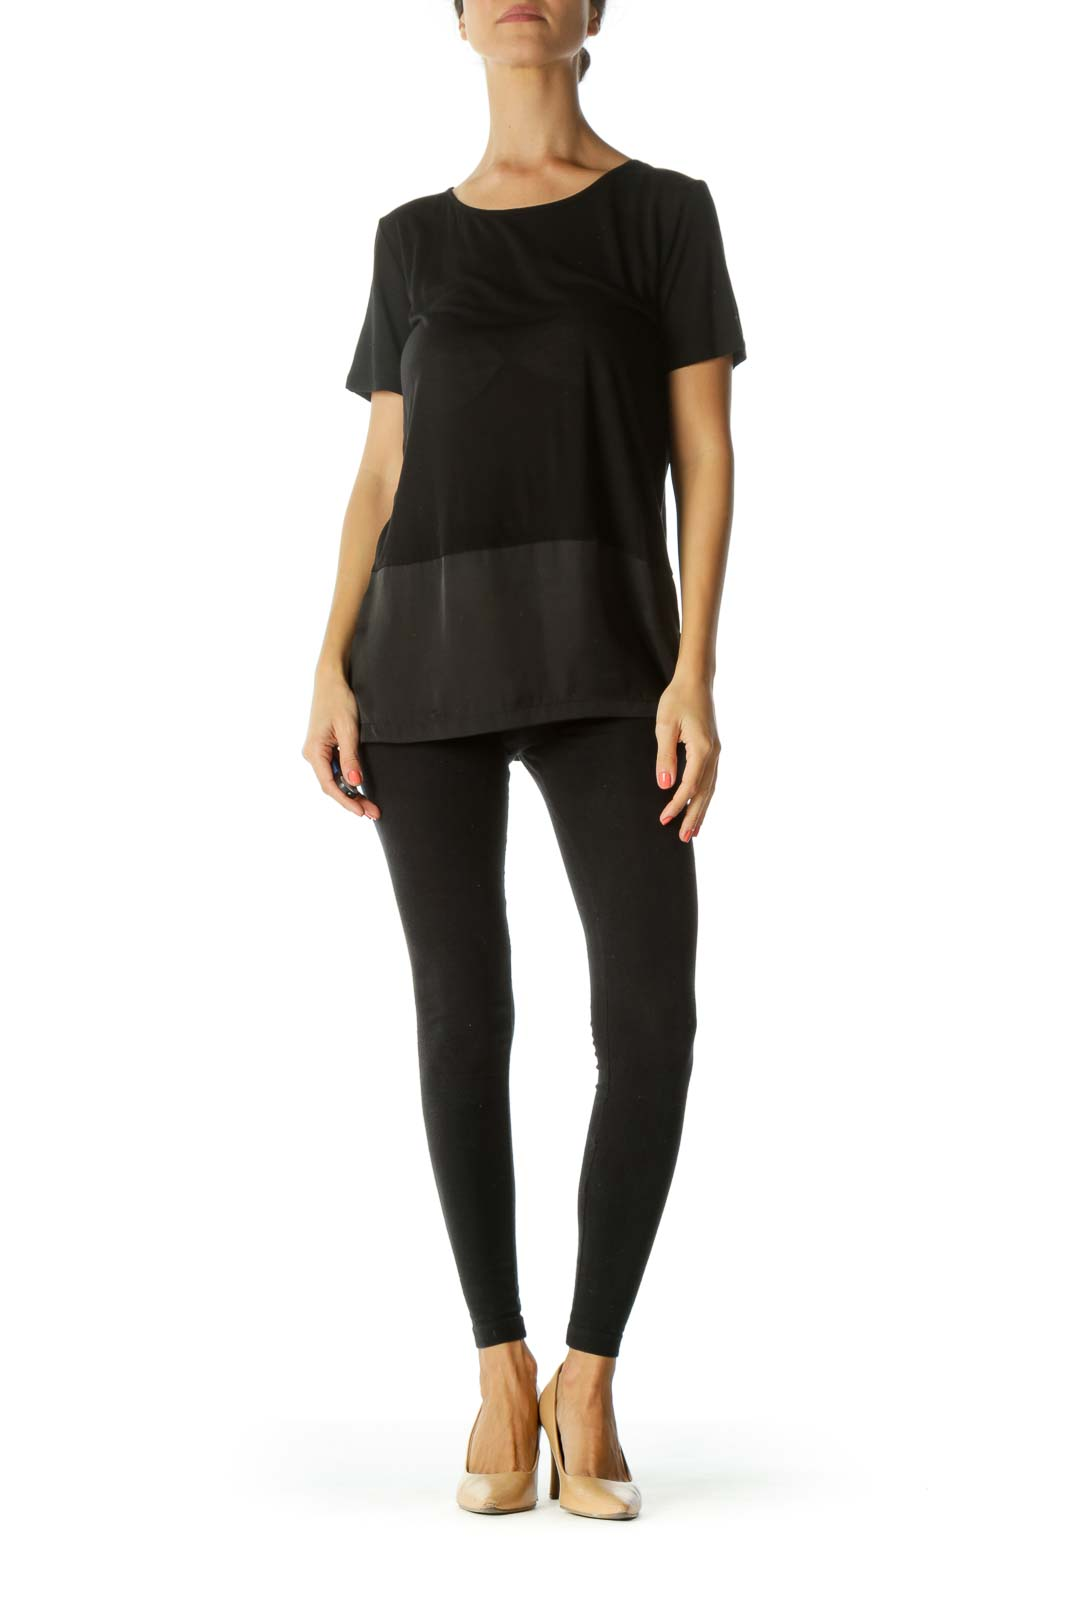 Black Round Neck Mixed-Media Stretch Short-Sleeve Top